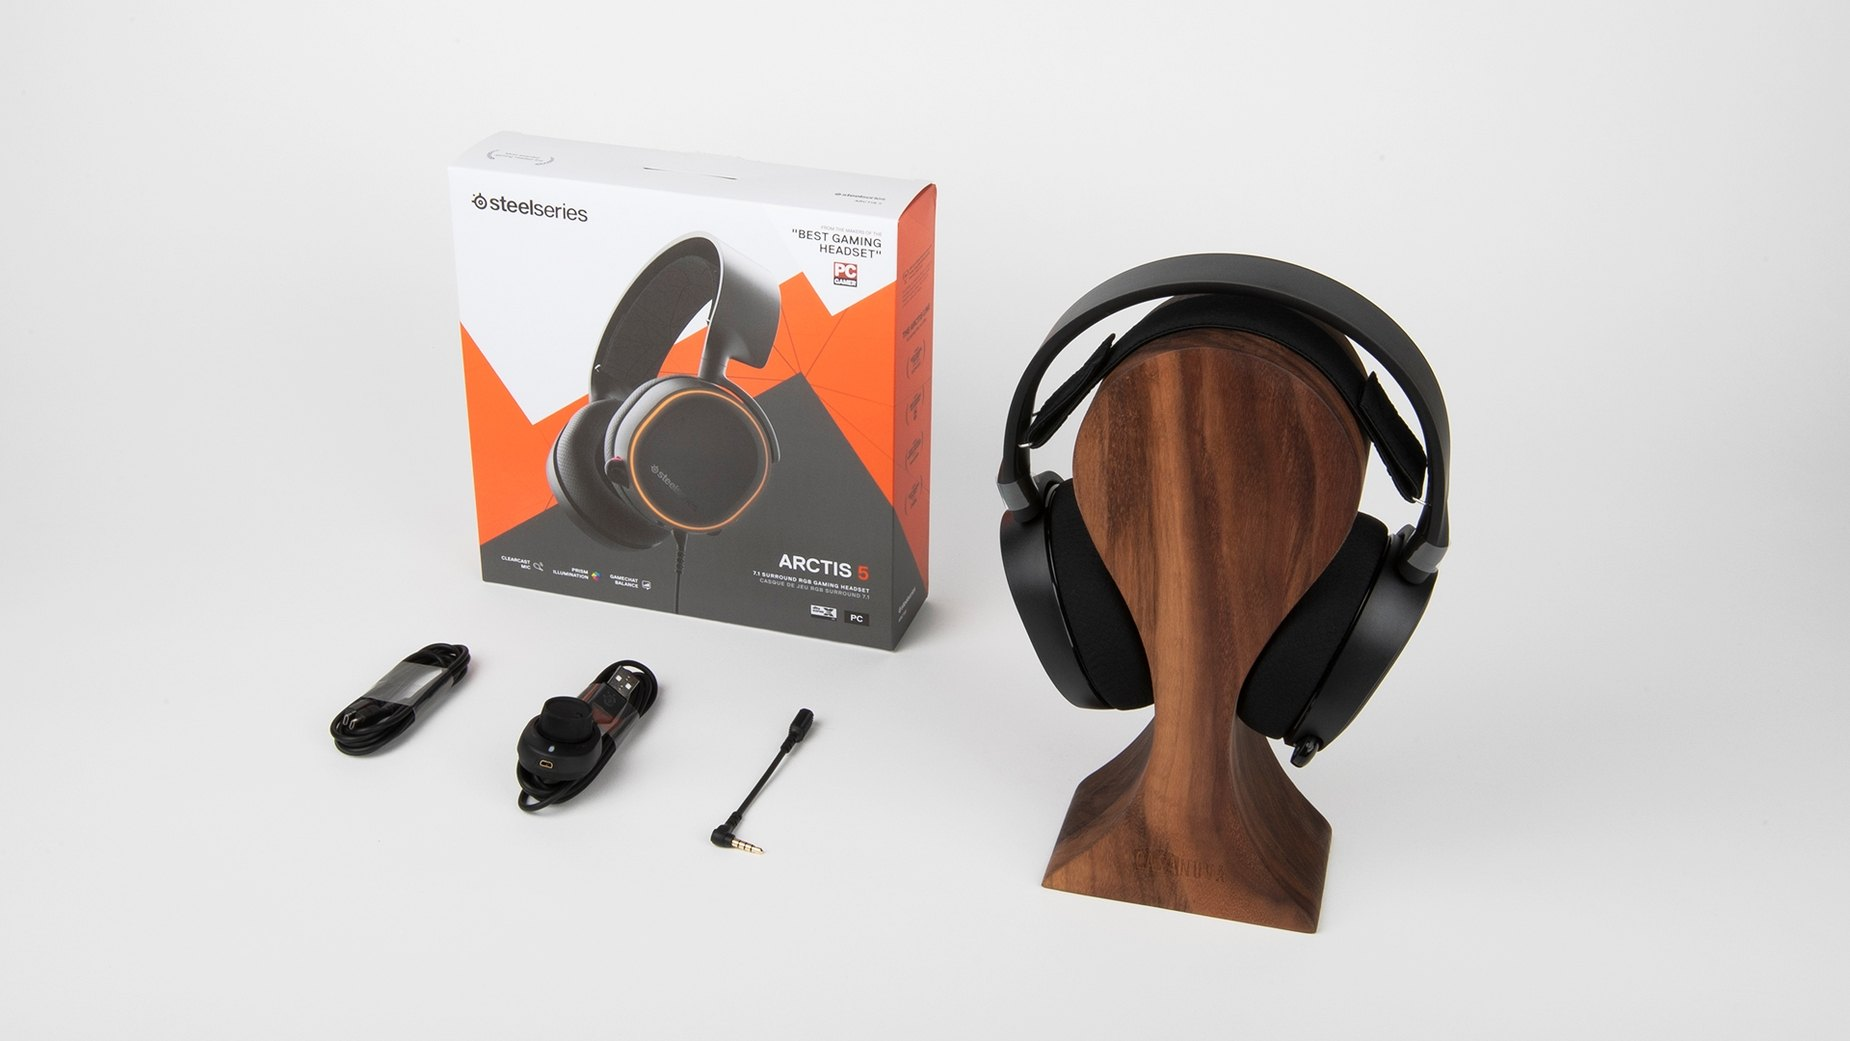 Full packaging and contents of Arctis 5 black including headset, packaging, USB cable, chat-mix dial, and headphone jack adapter